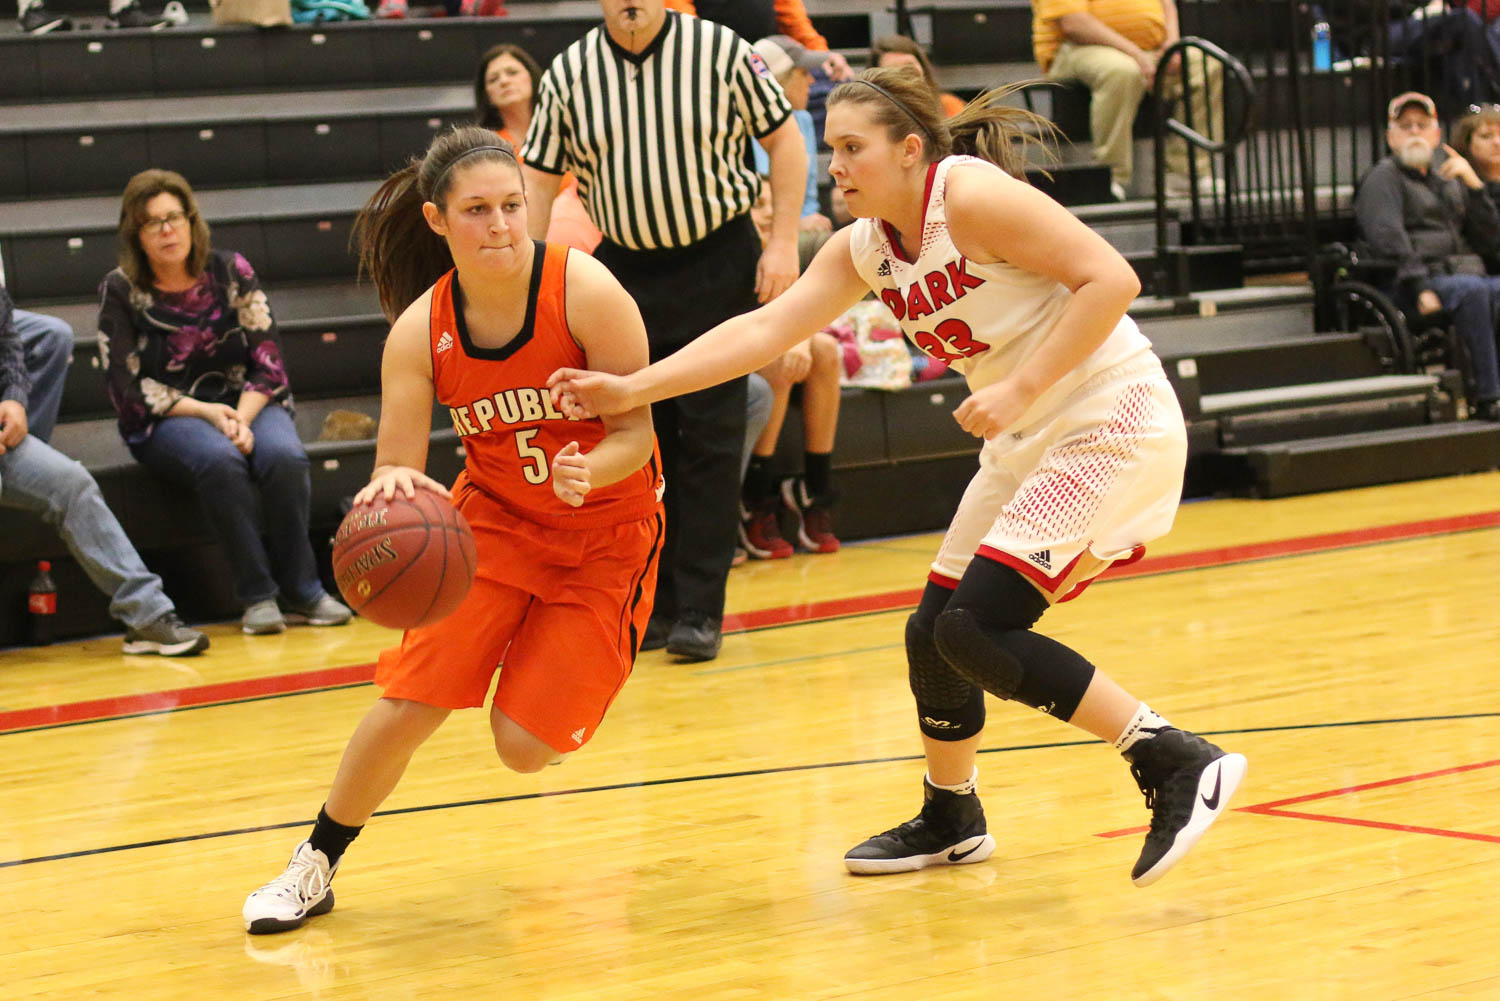 Photos: JV Girls Basketball Vs Ozark